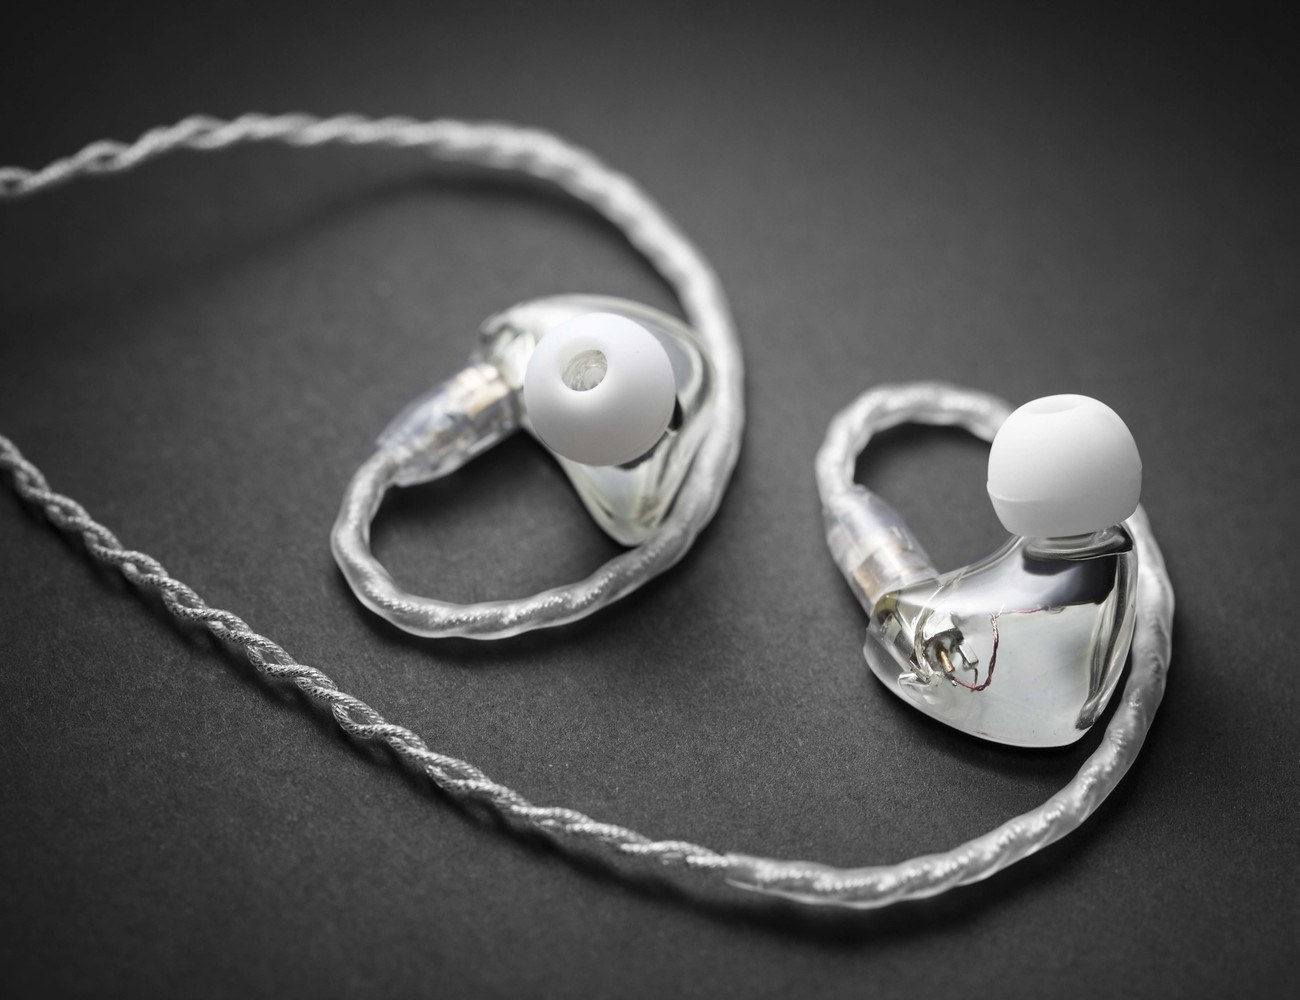 RiotHz – Handcrafted Custom Hi-Fi Earbuds for Everyone